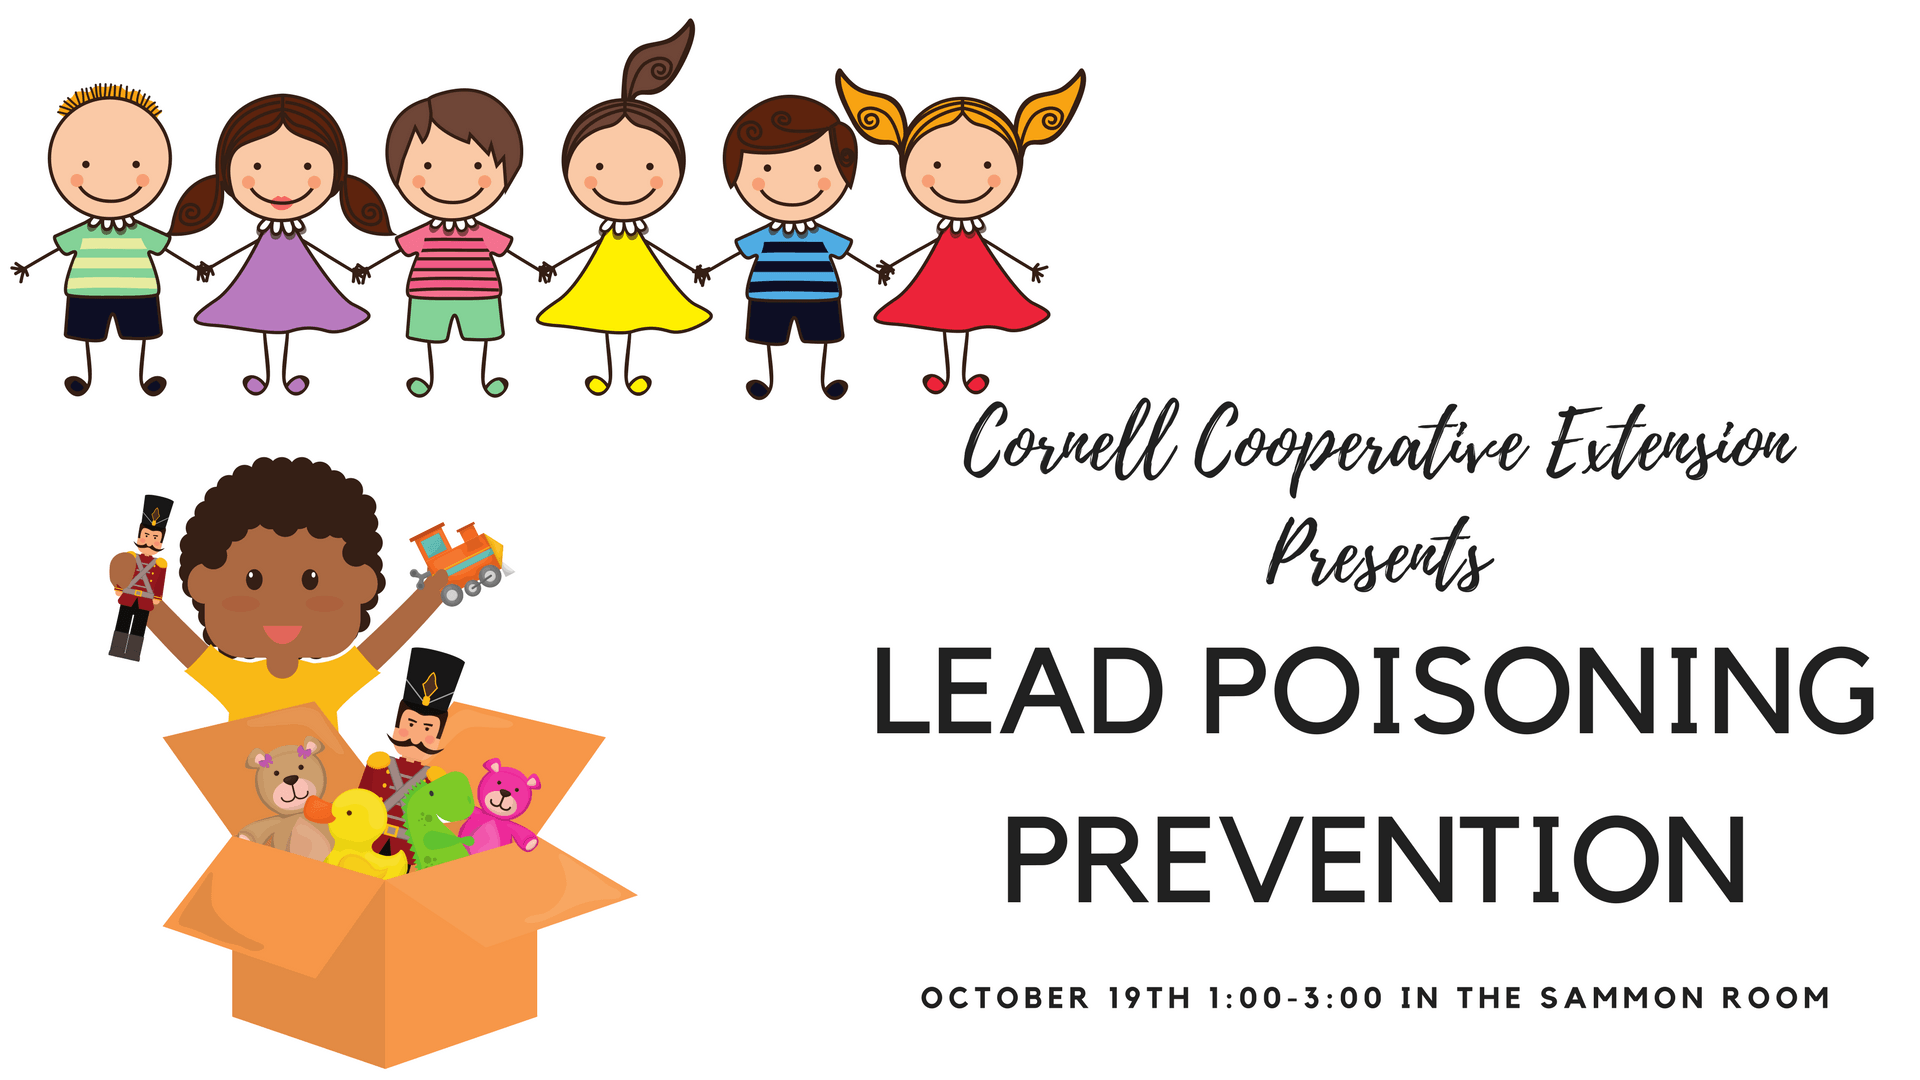 Lead Poisoning Prevention 1:00.